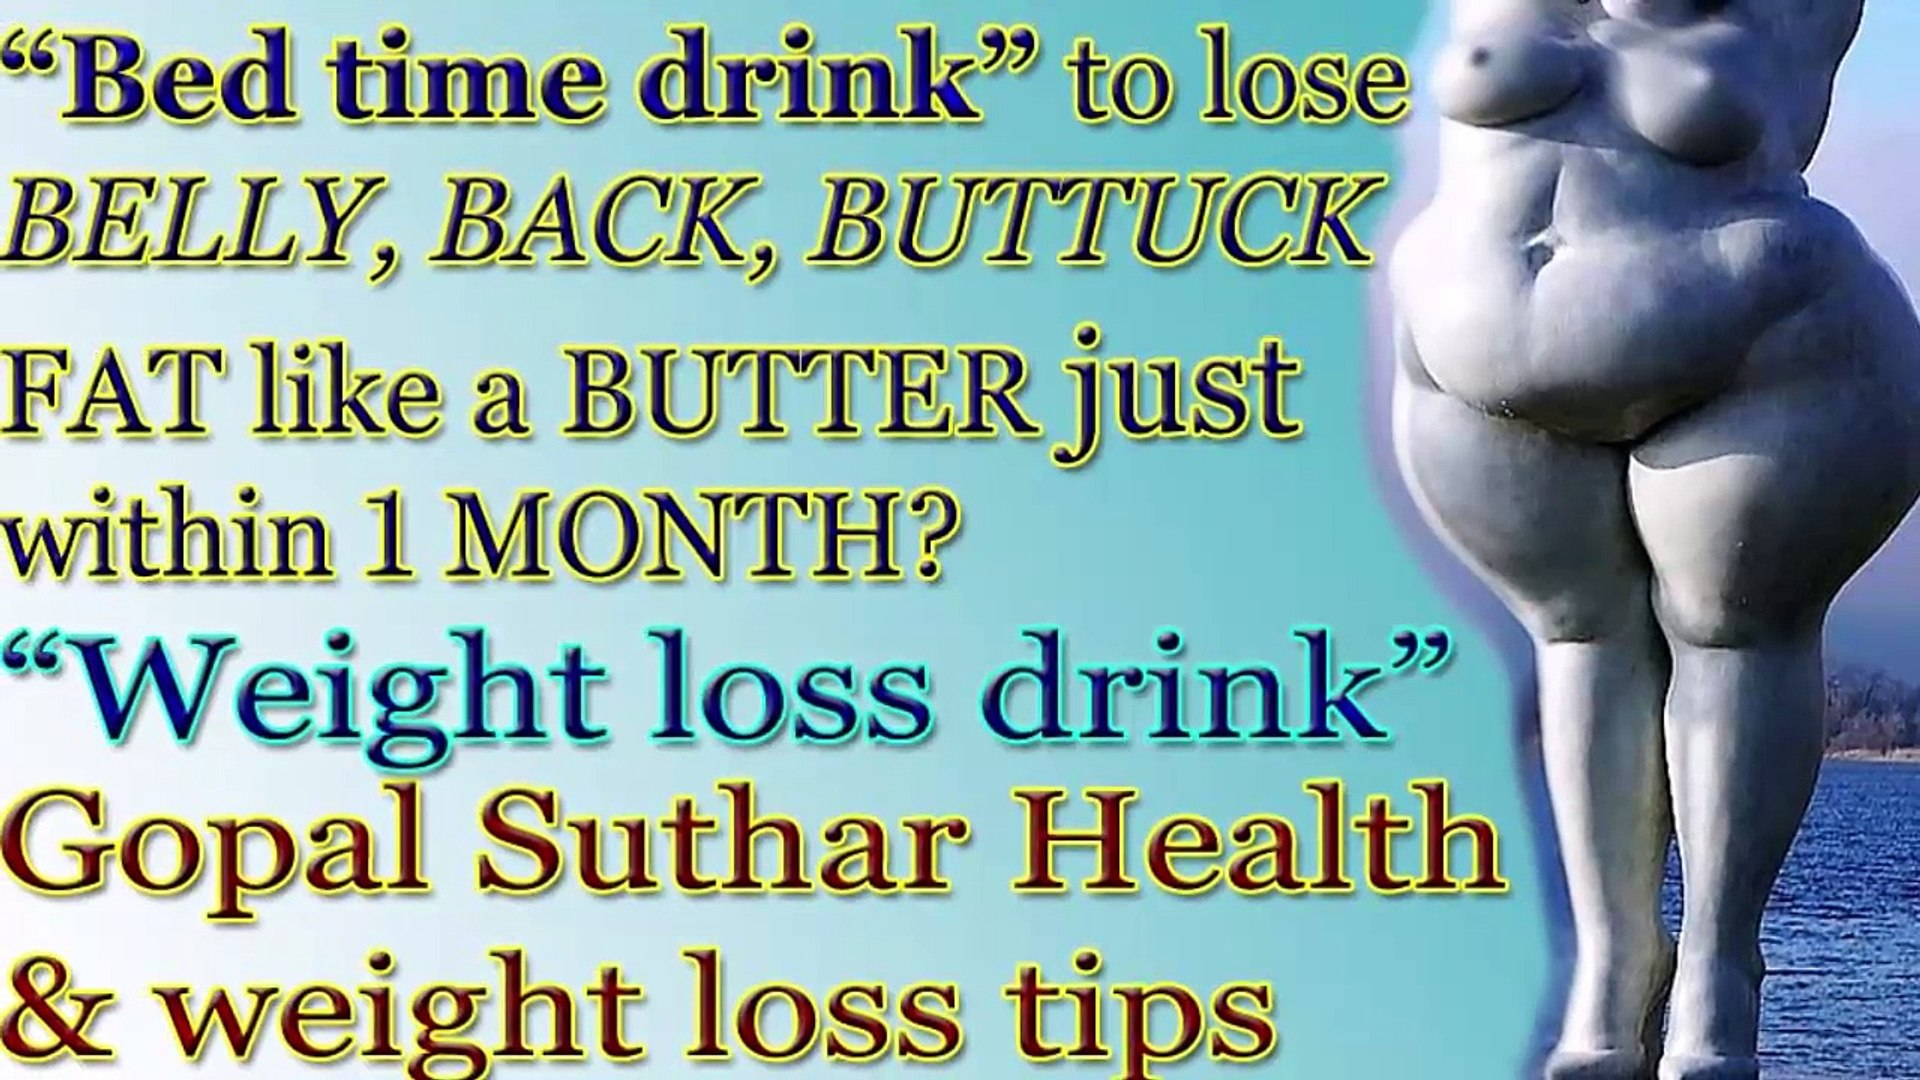 Bed time drink to lose WEIGHT & MELT BELLY, BACK, BUTTOCK fat like BUTTER just within A MONTH *